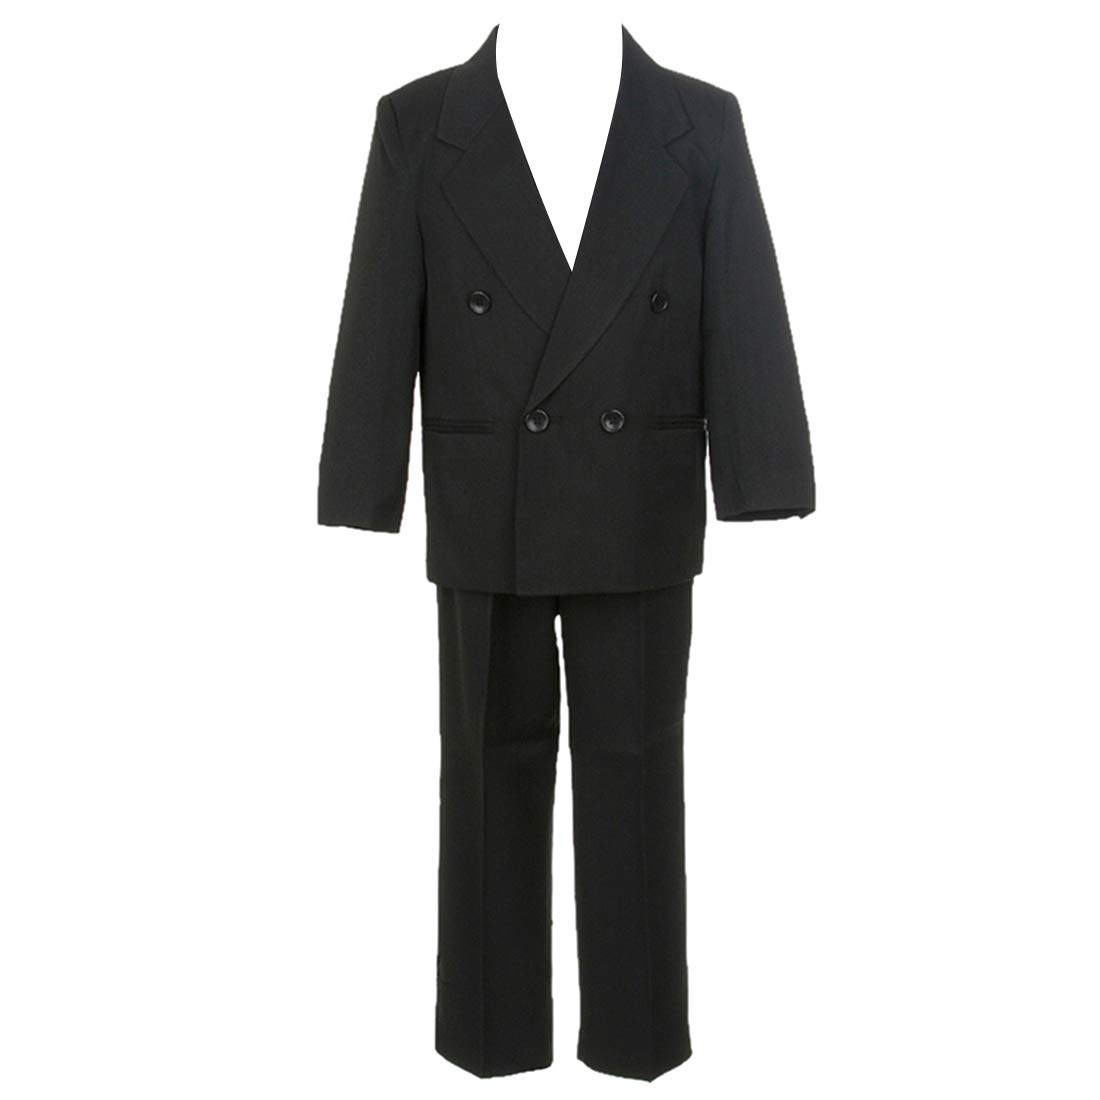 HBDesign Boys 3 Piece Double Breasted Formal Suit Vest Black